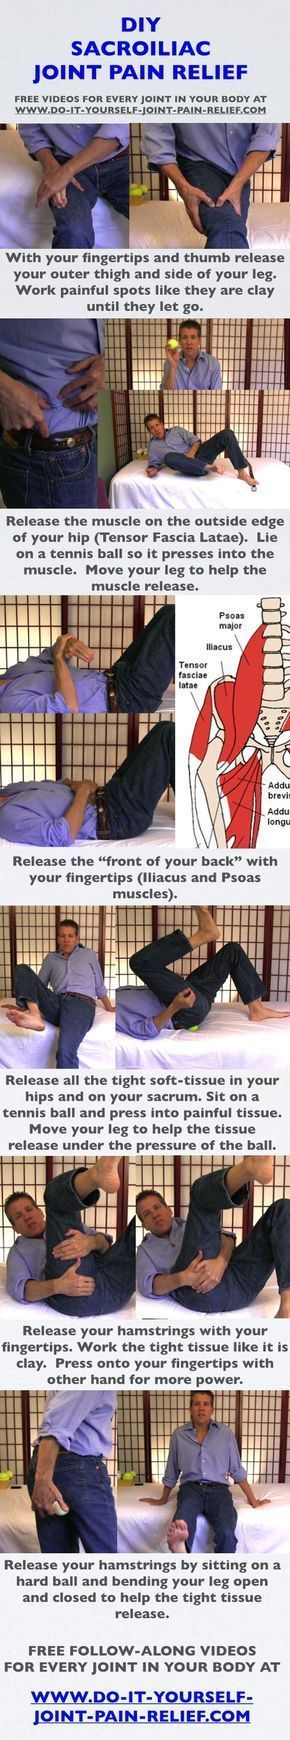 12 best diy joint pain relief images on pinterest massage if youre in pain start here 10 exercises for back and hip pain you should be doing now do this 5 minute exercise when it hurts to stand solutioingenieria Choice Image